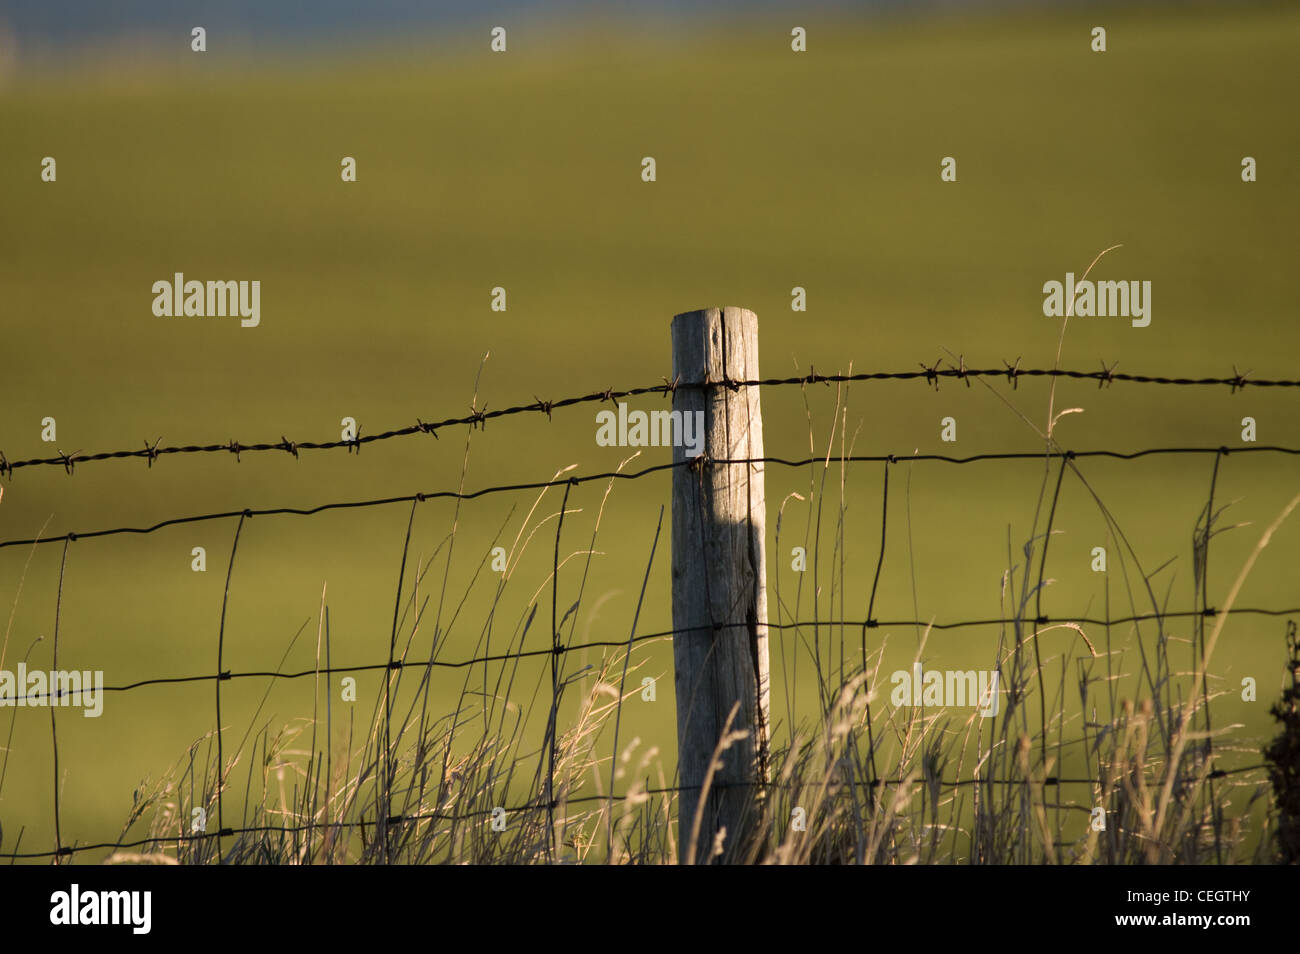 A fence post with barbed wire is photographed against a green field in Yorkshire - Stock Image